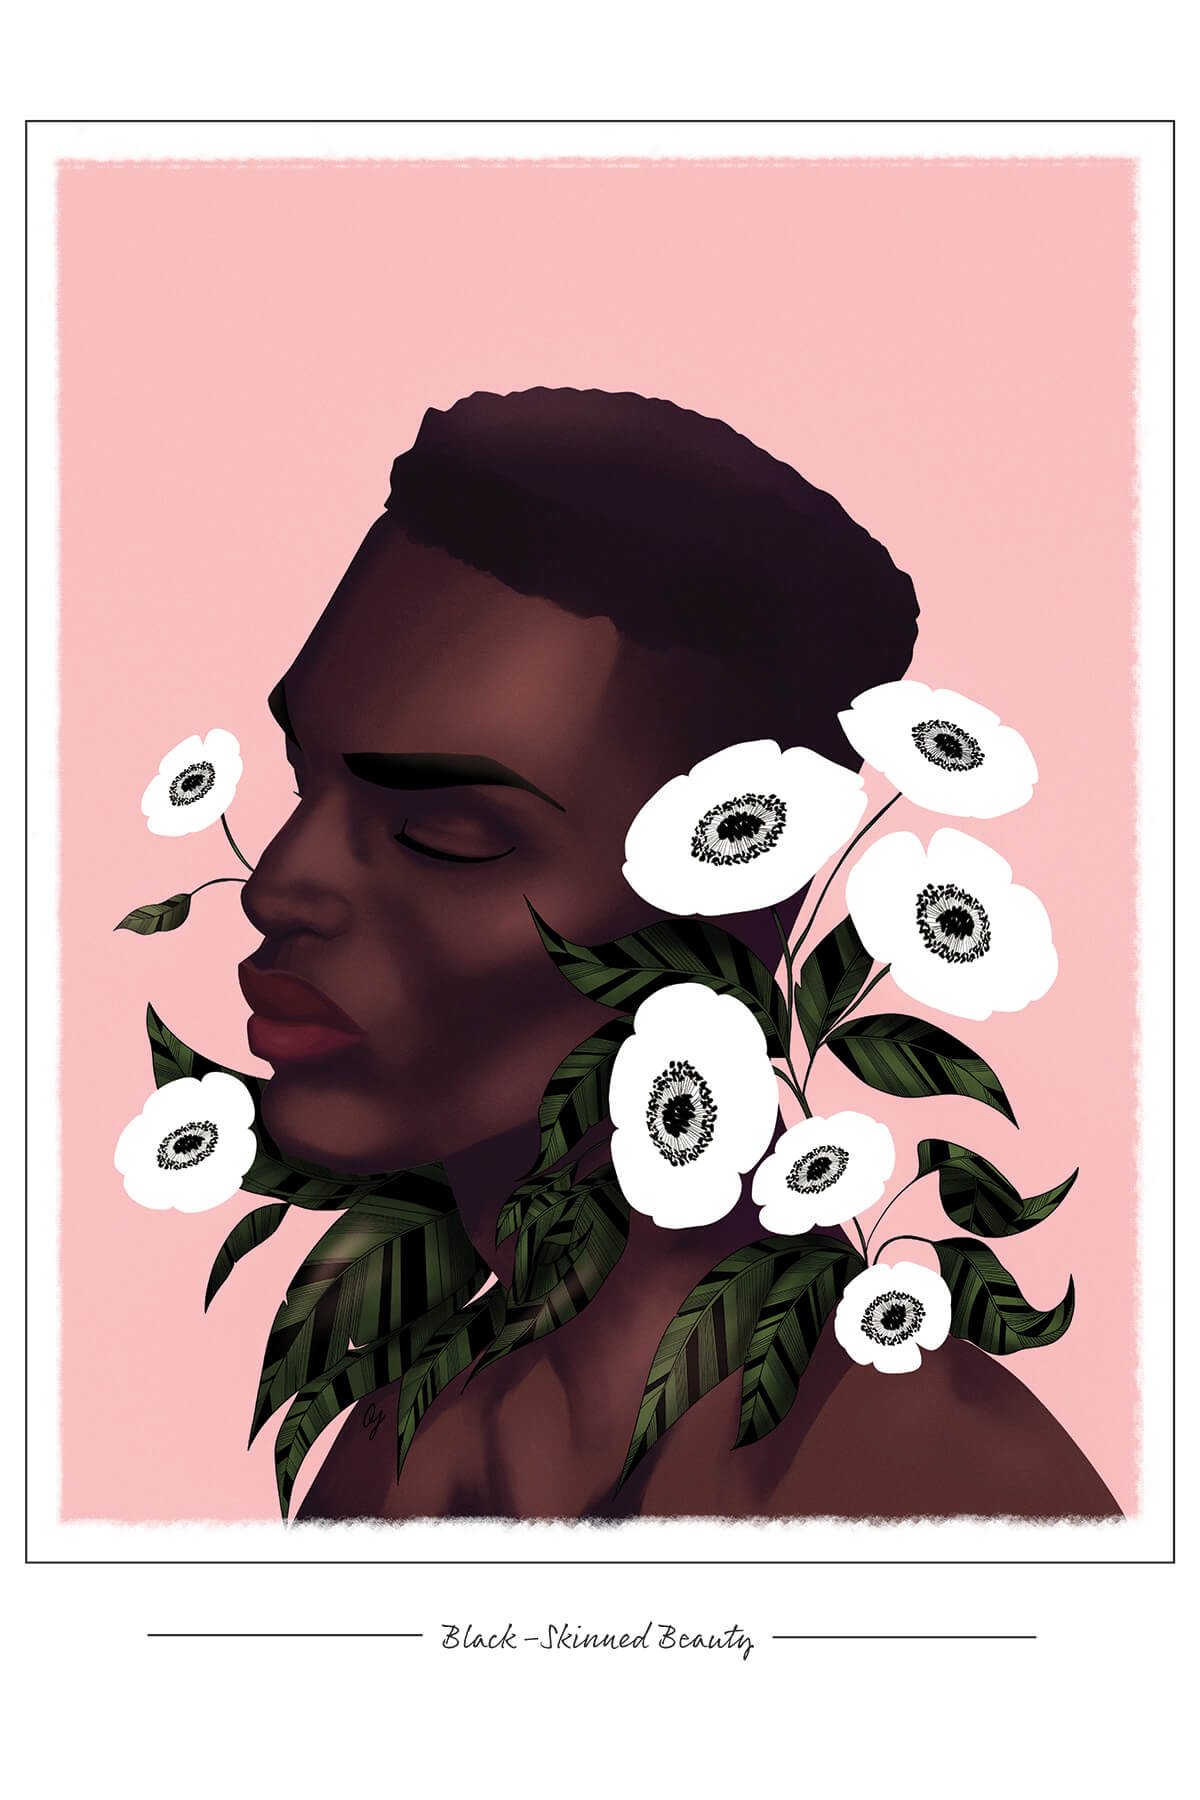 "A painting of a Black man's head and shoulders in profile. He is surrounded by large white flowers, with a pink background and the words ""Black-Skinned Beauty"" in the white border at the bottom."